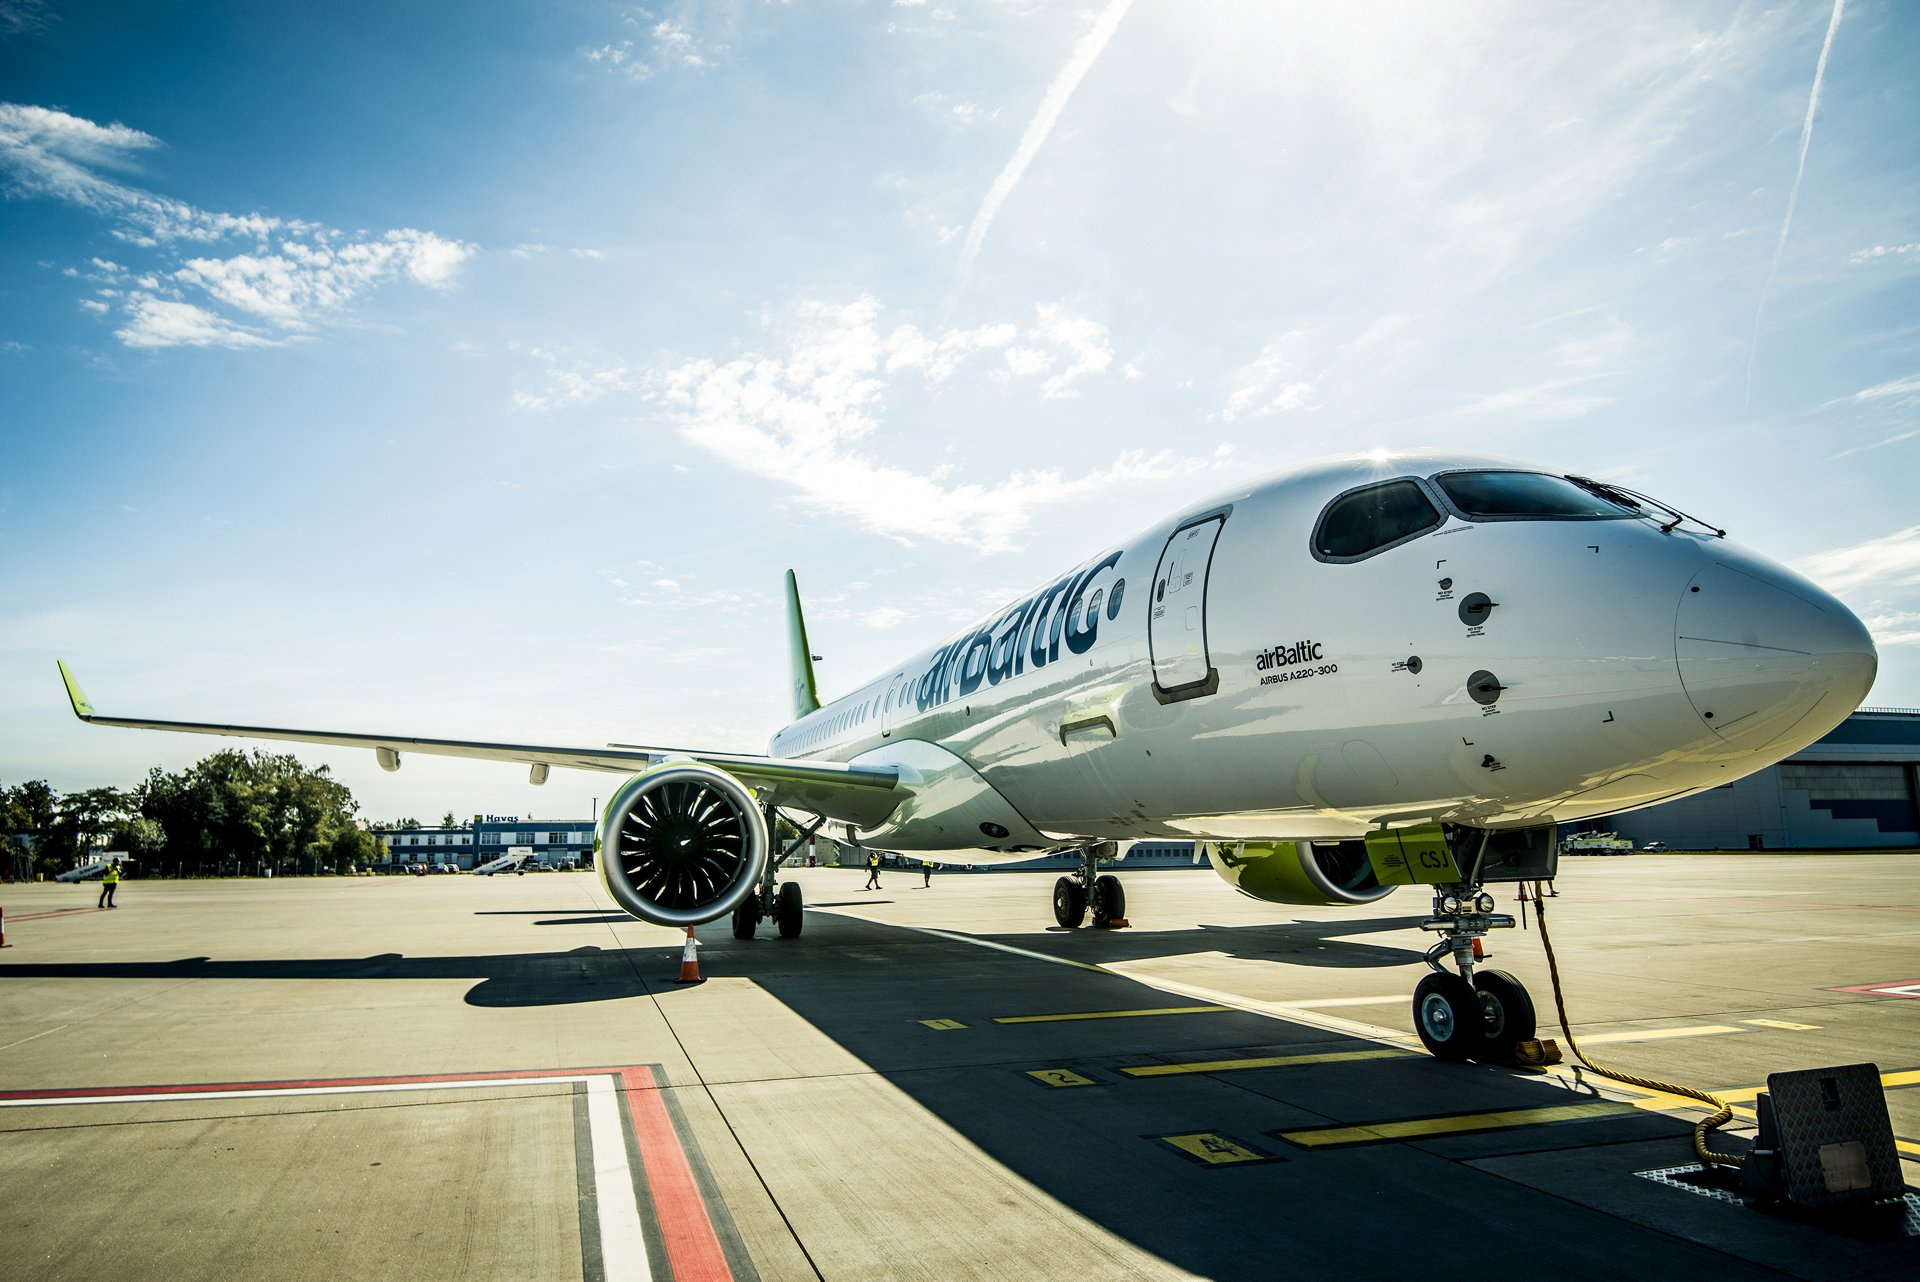 World demonstration tour with airBaltic A220-300